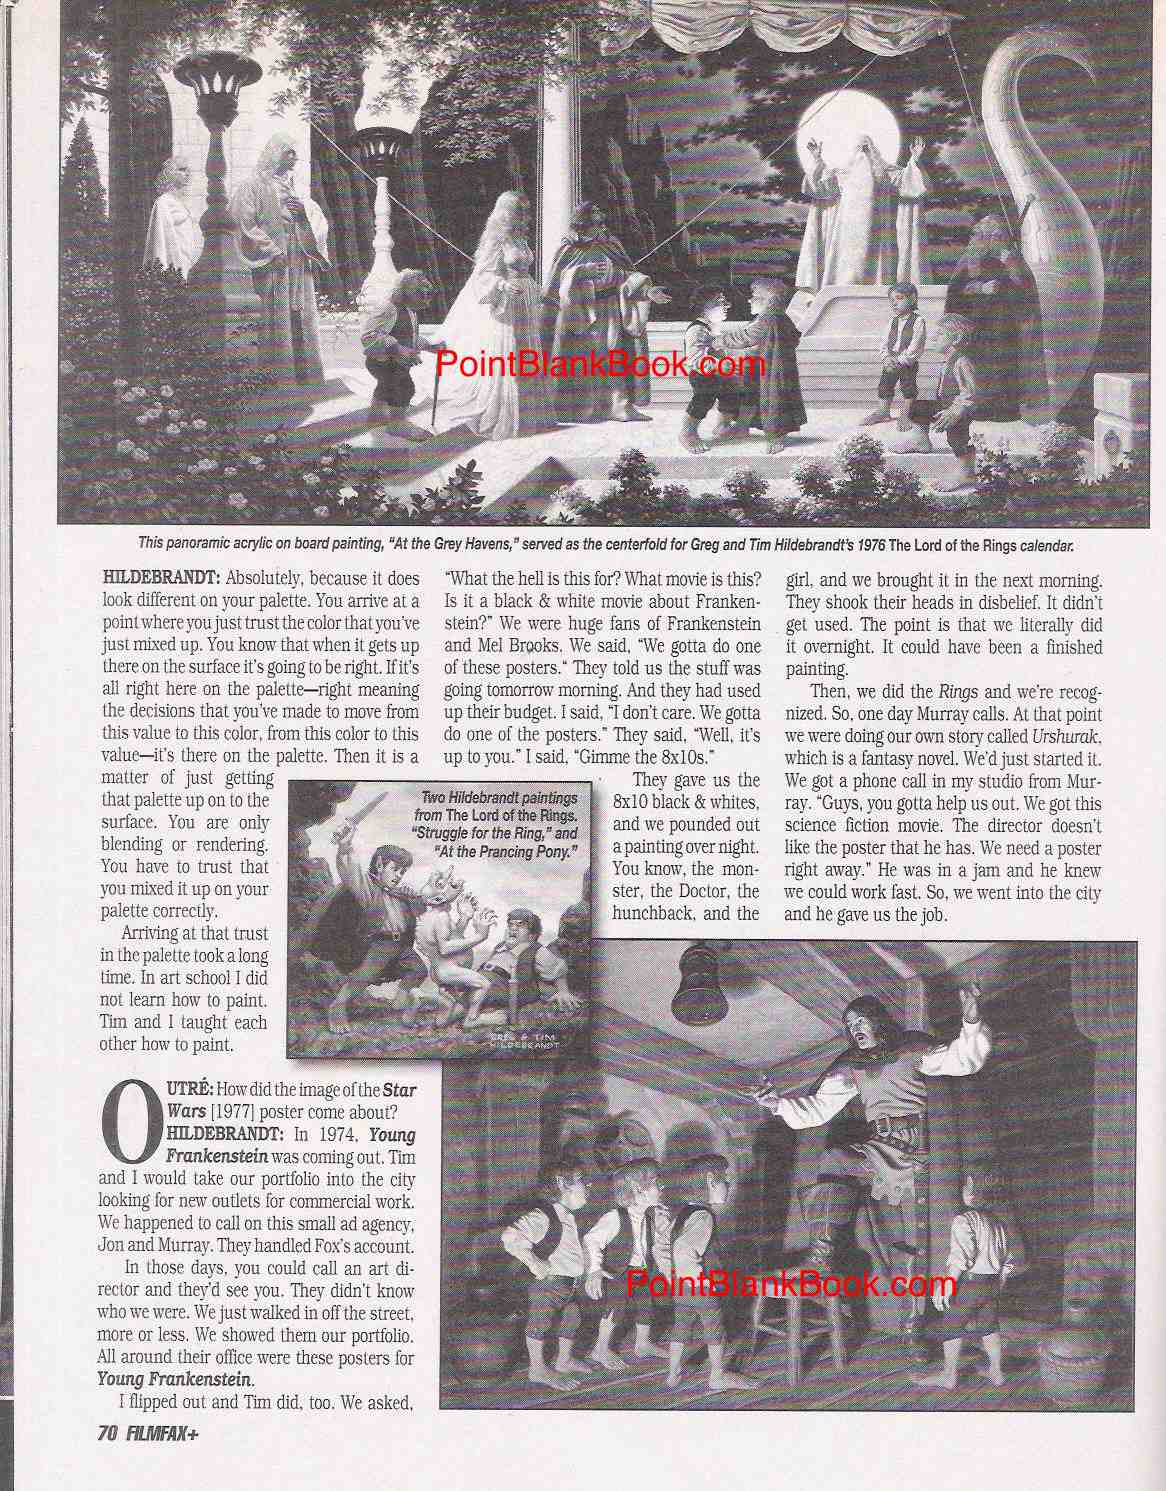 Page 5 of Filmfax Greg Hildebrandt interview, Pt. 2